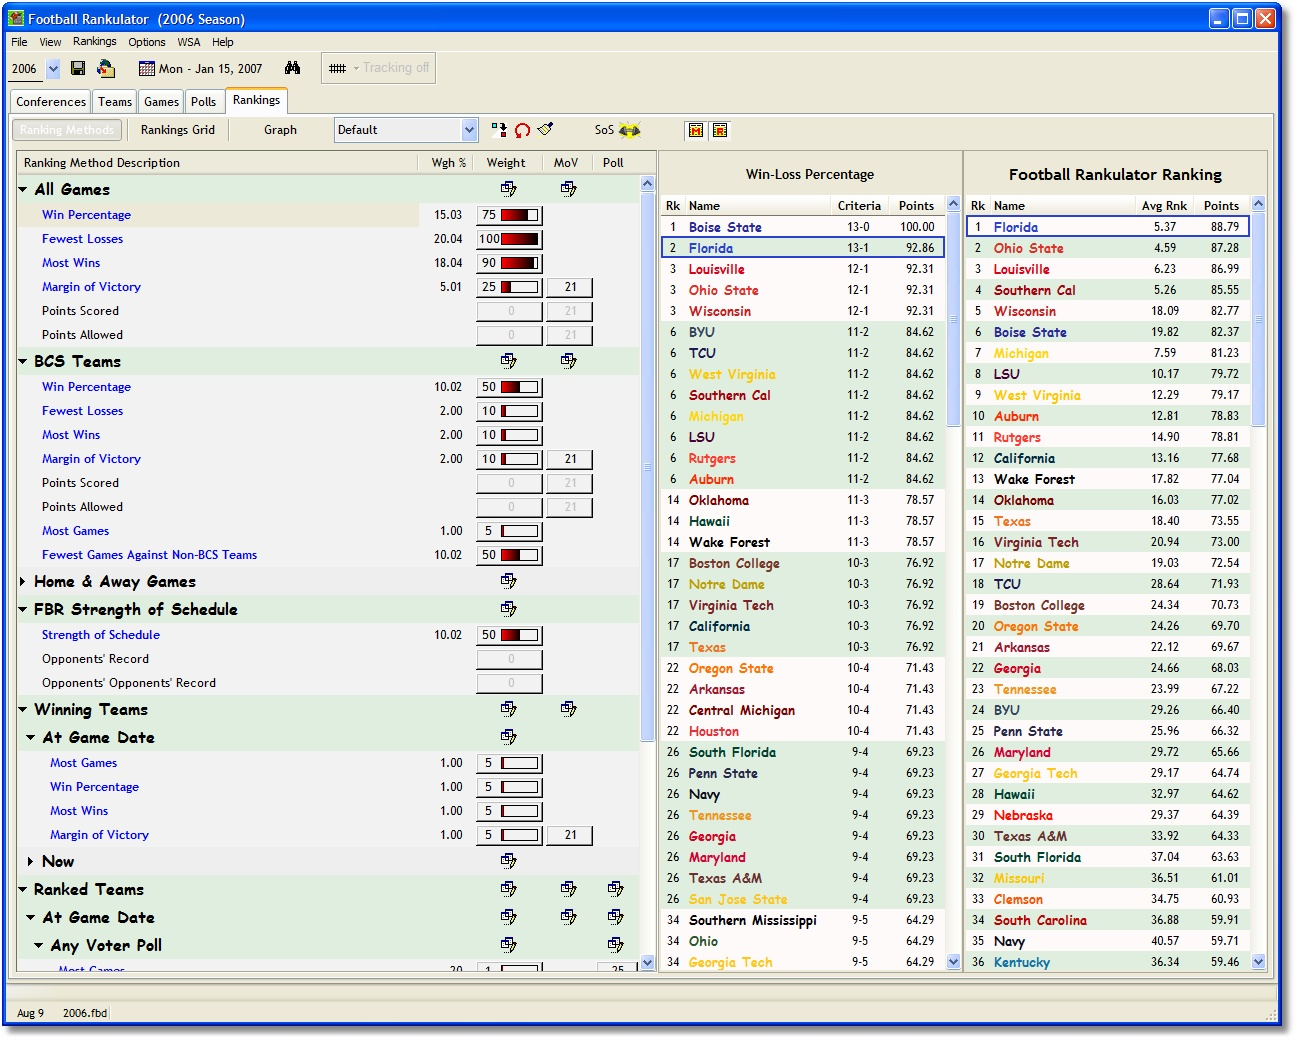 Football Rankulator 2.3.0